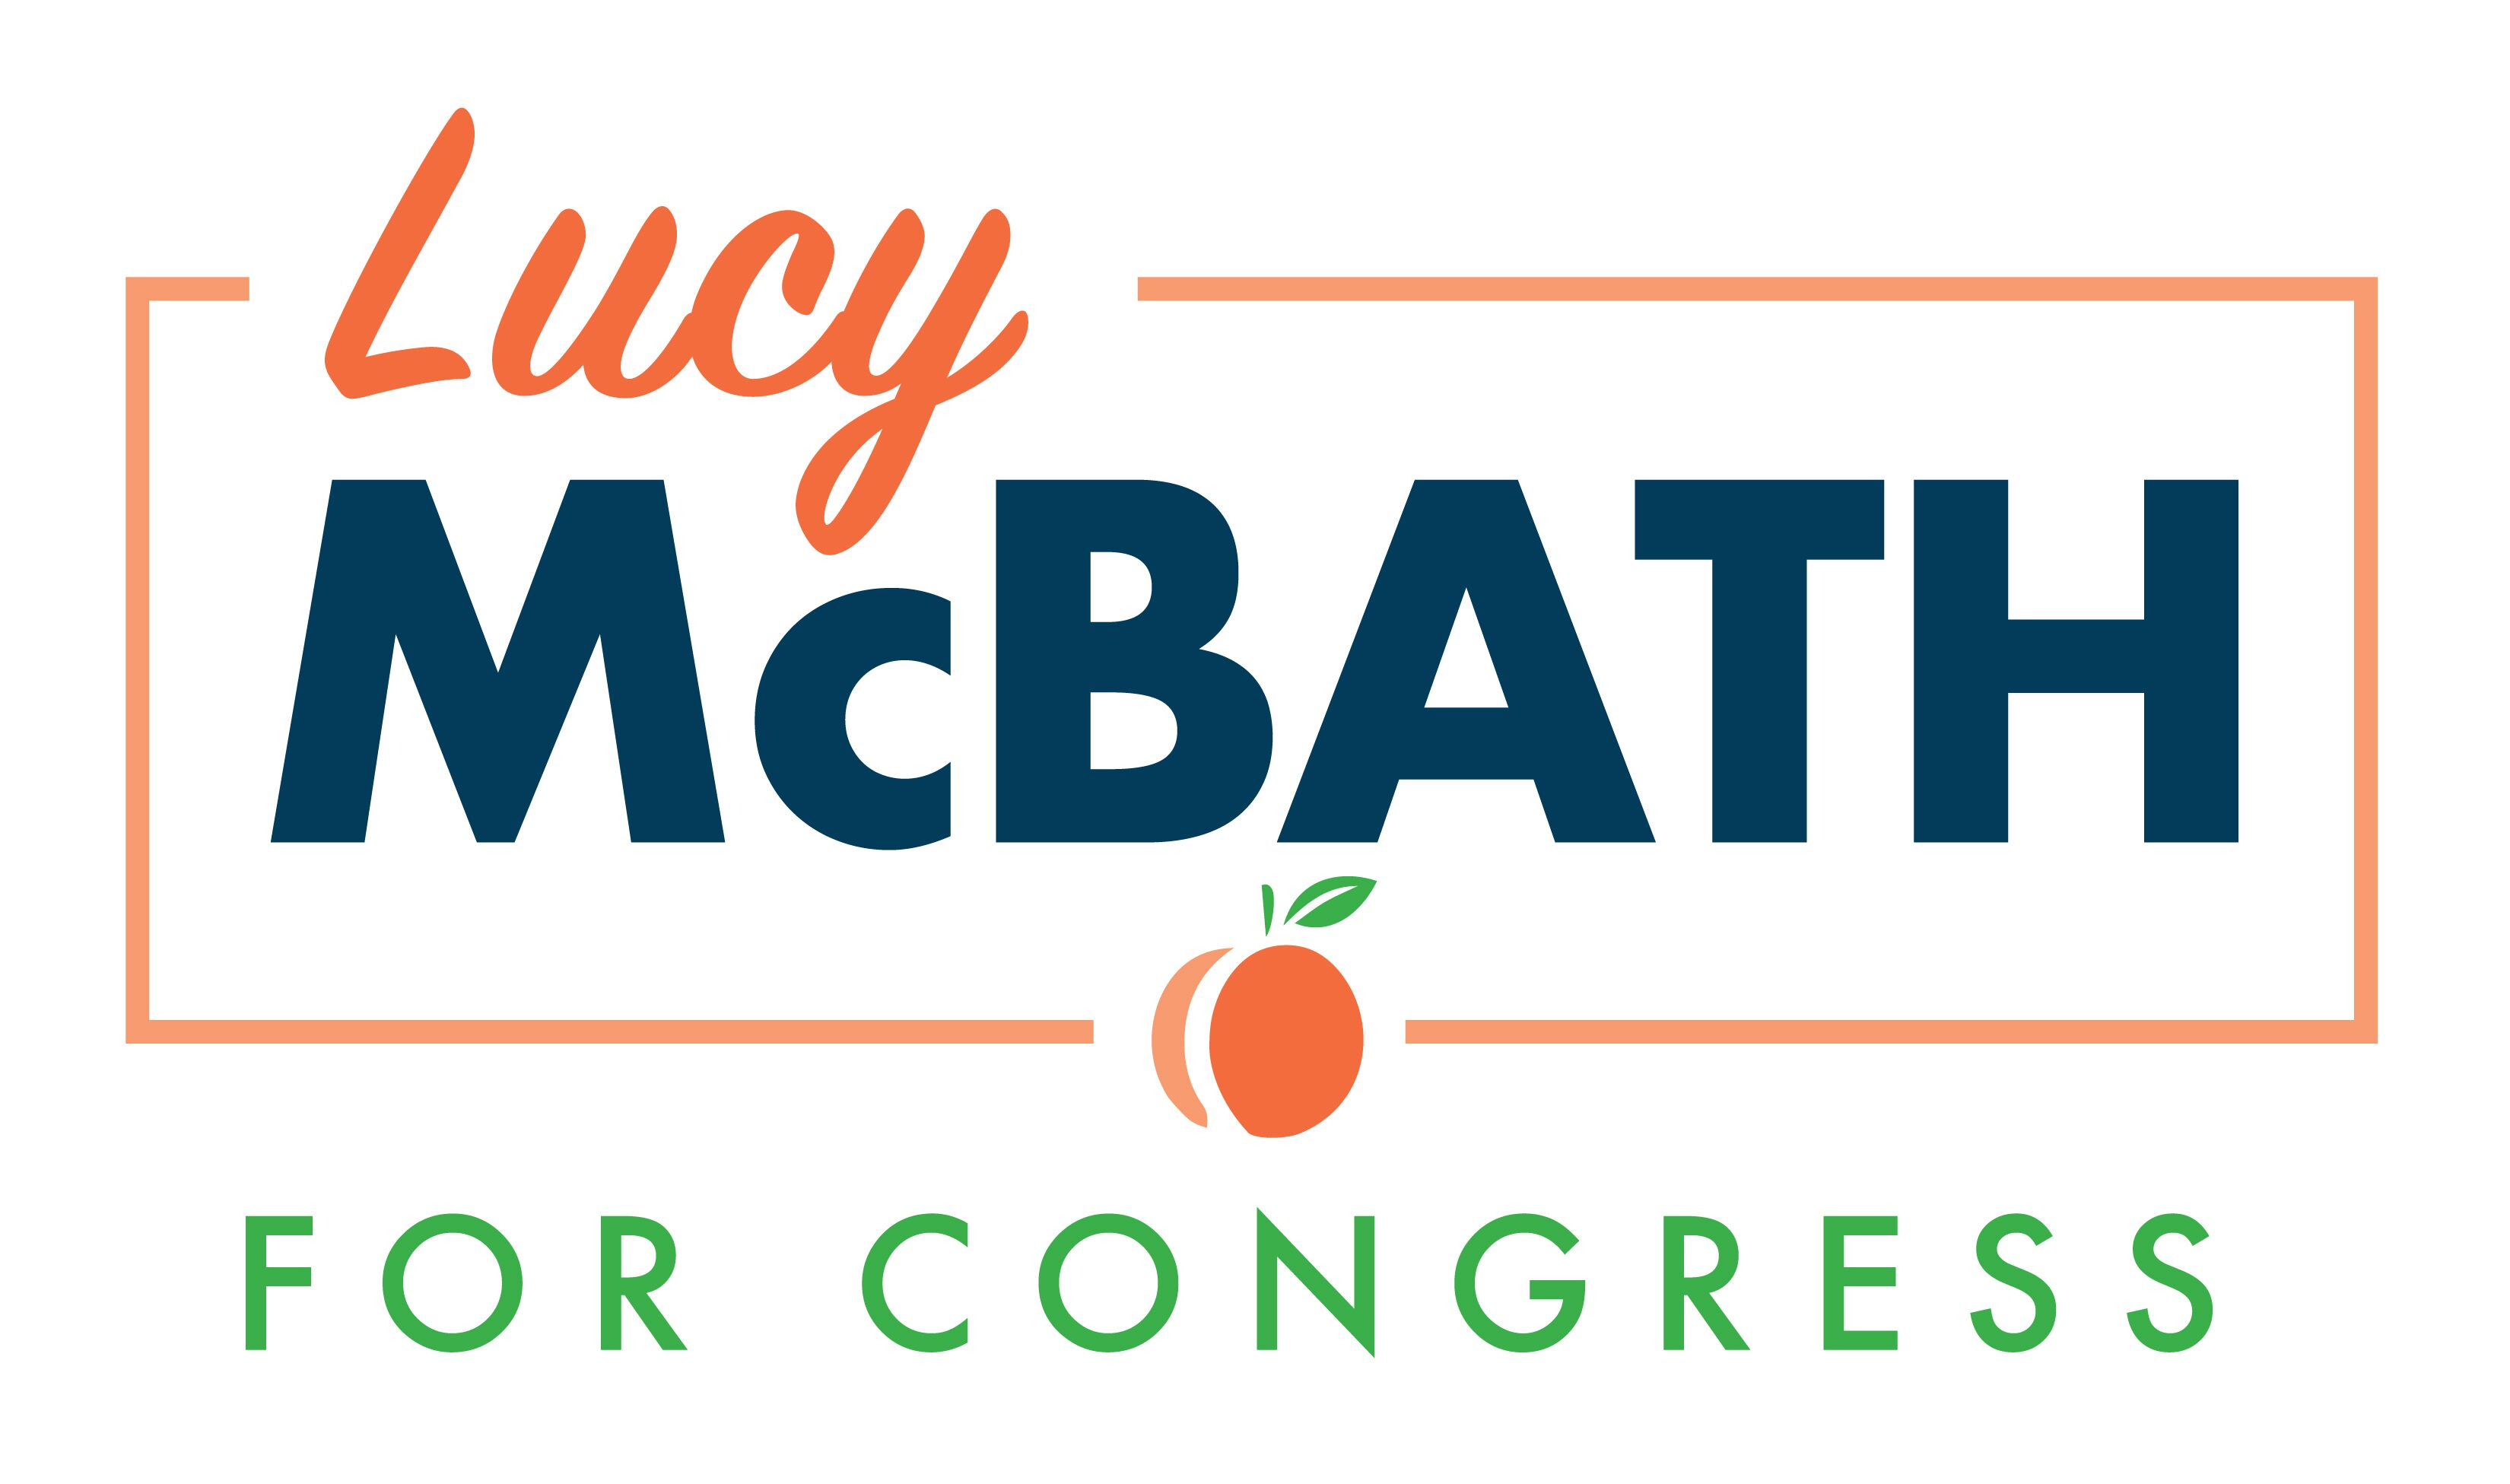 Lucy McBath for Congress